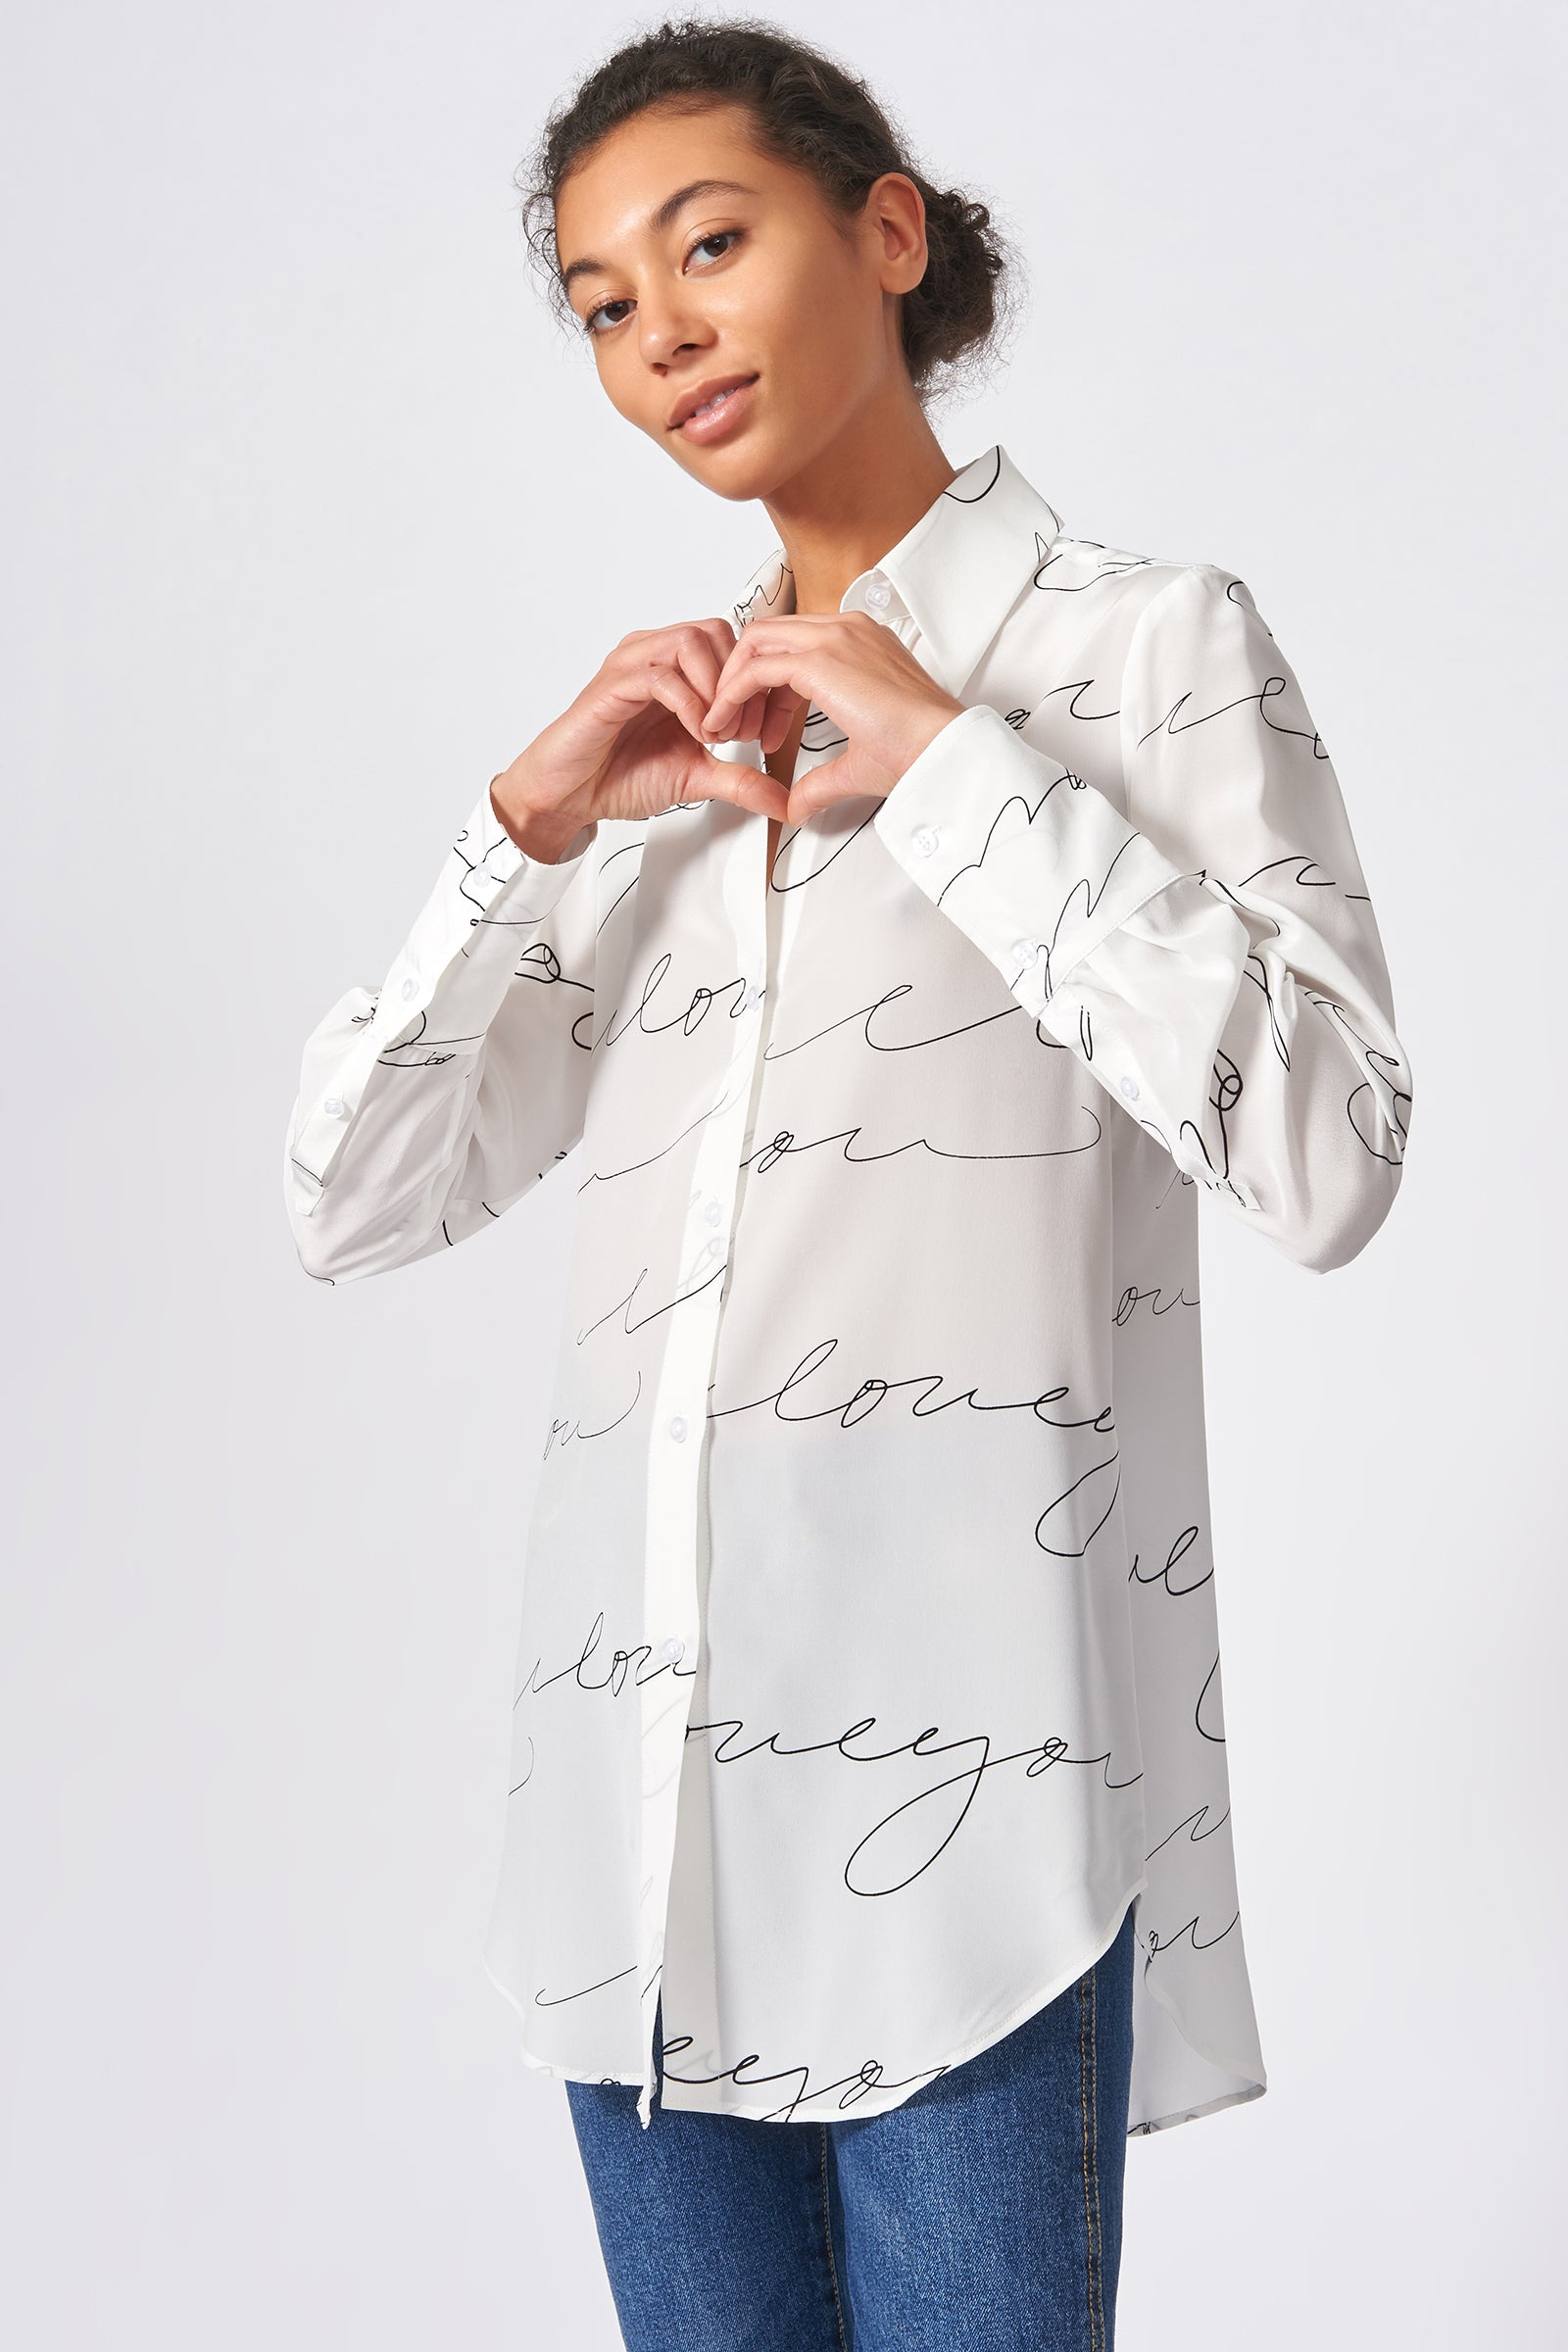 Kal Rieman Shirt Tail Tunic in Ivory I Love You Print on Model Front View